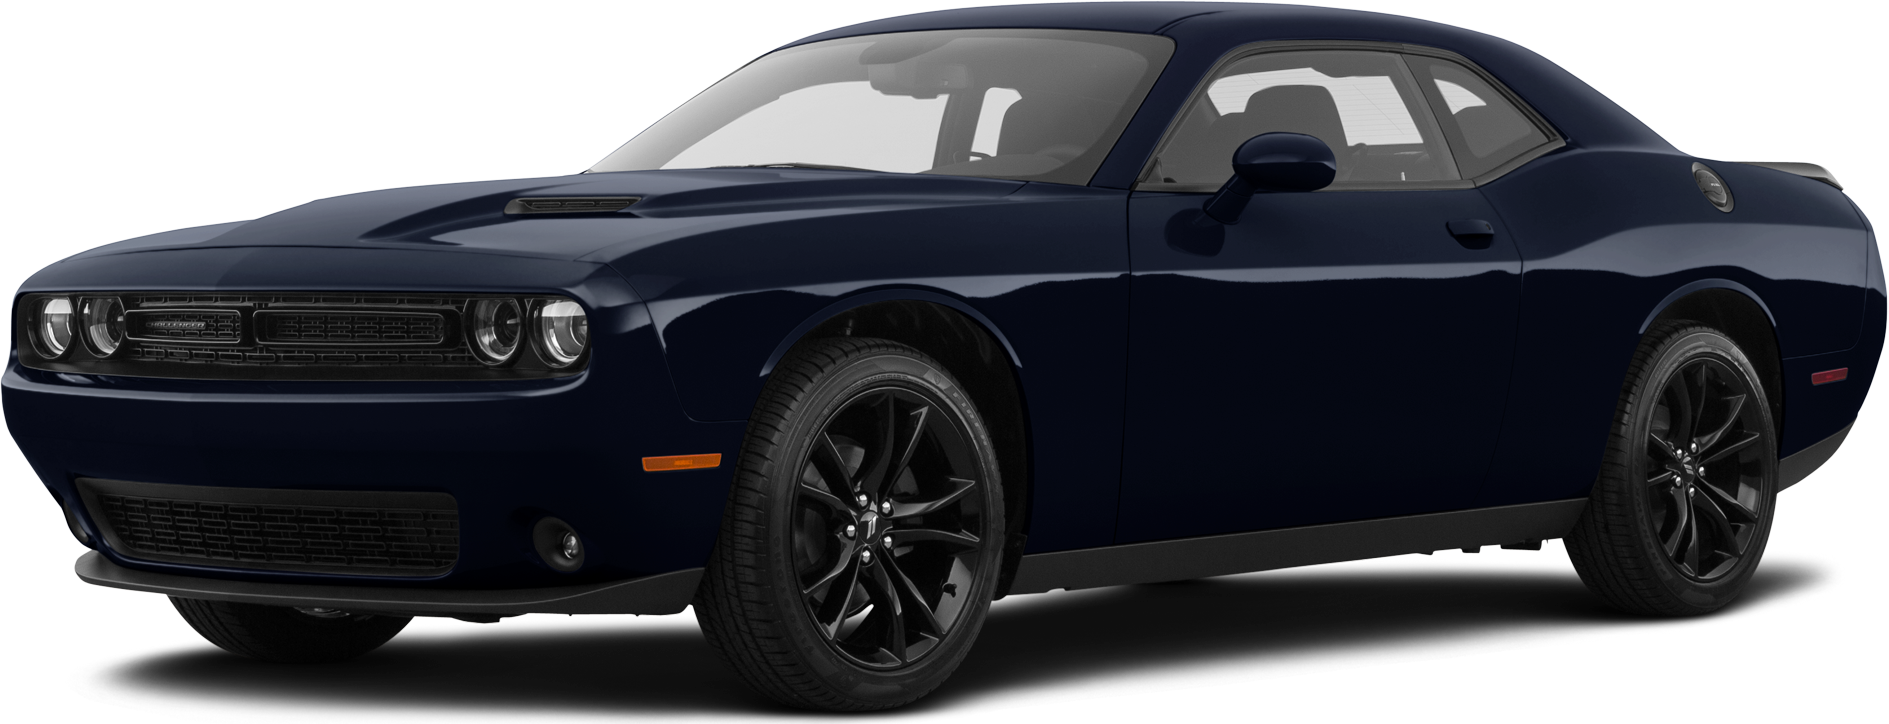 dodge hellcat kelley blue book Used 2 Dodge Challenger SRT Hellcat Coupe 2D Prices  Kelley